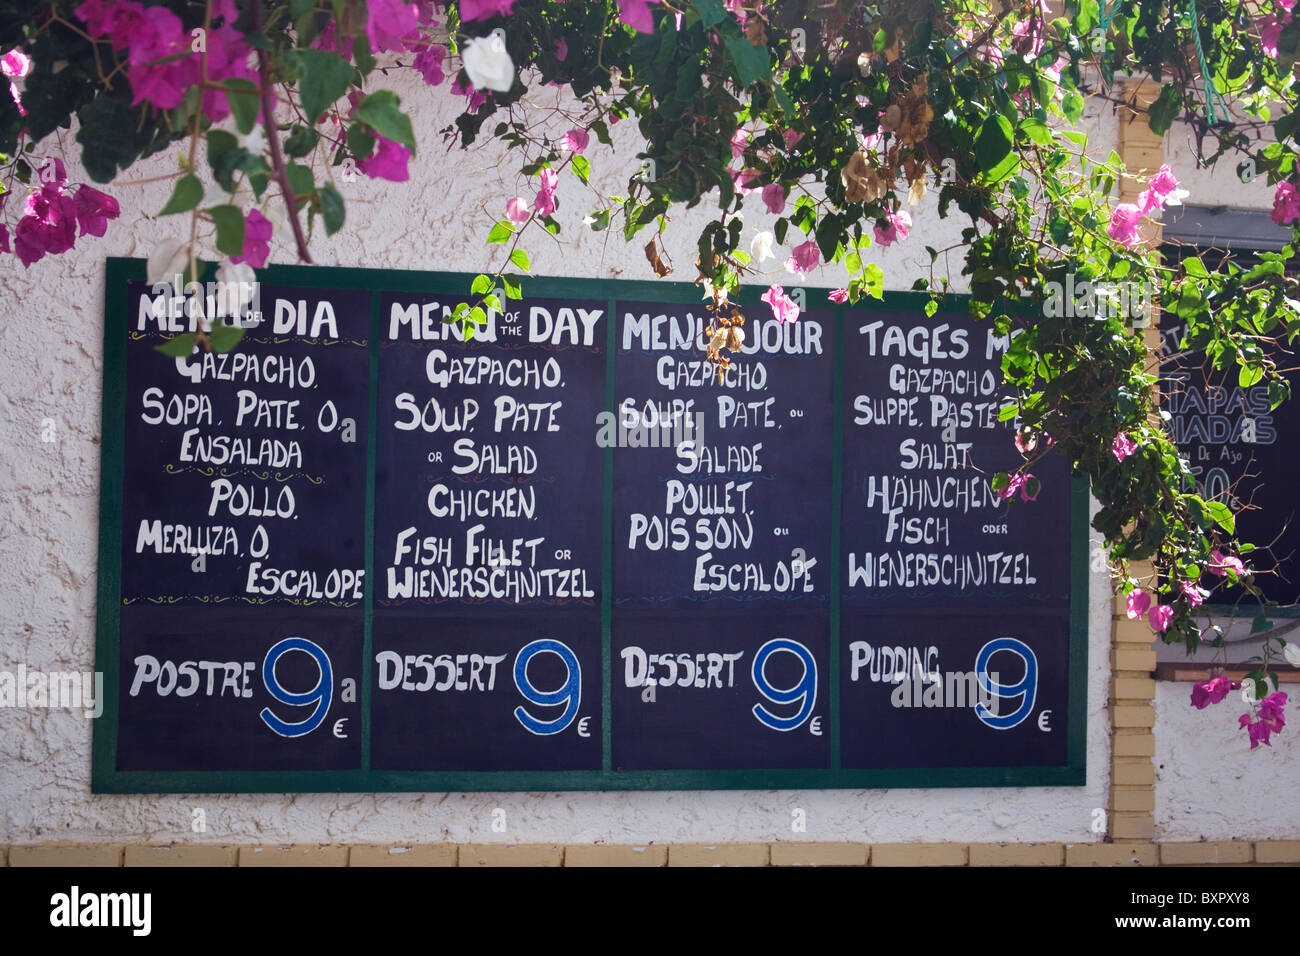 Menu board in four different languages advertising the menu of the day at nine euros. - Stock Image